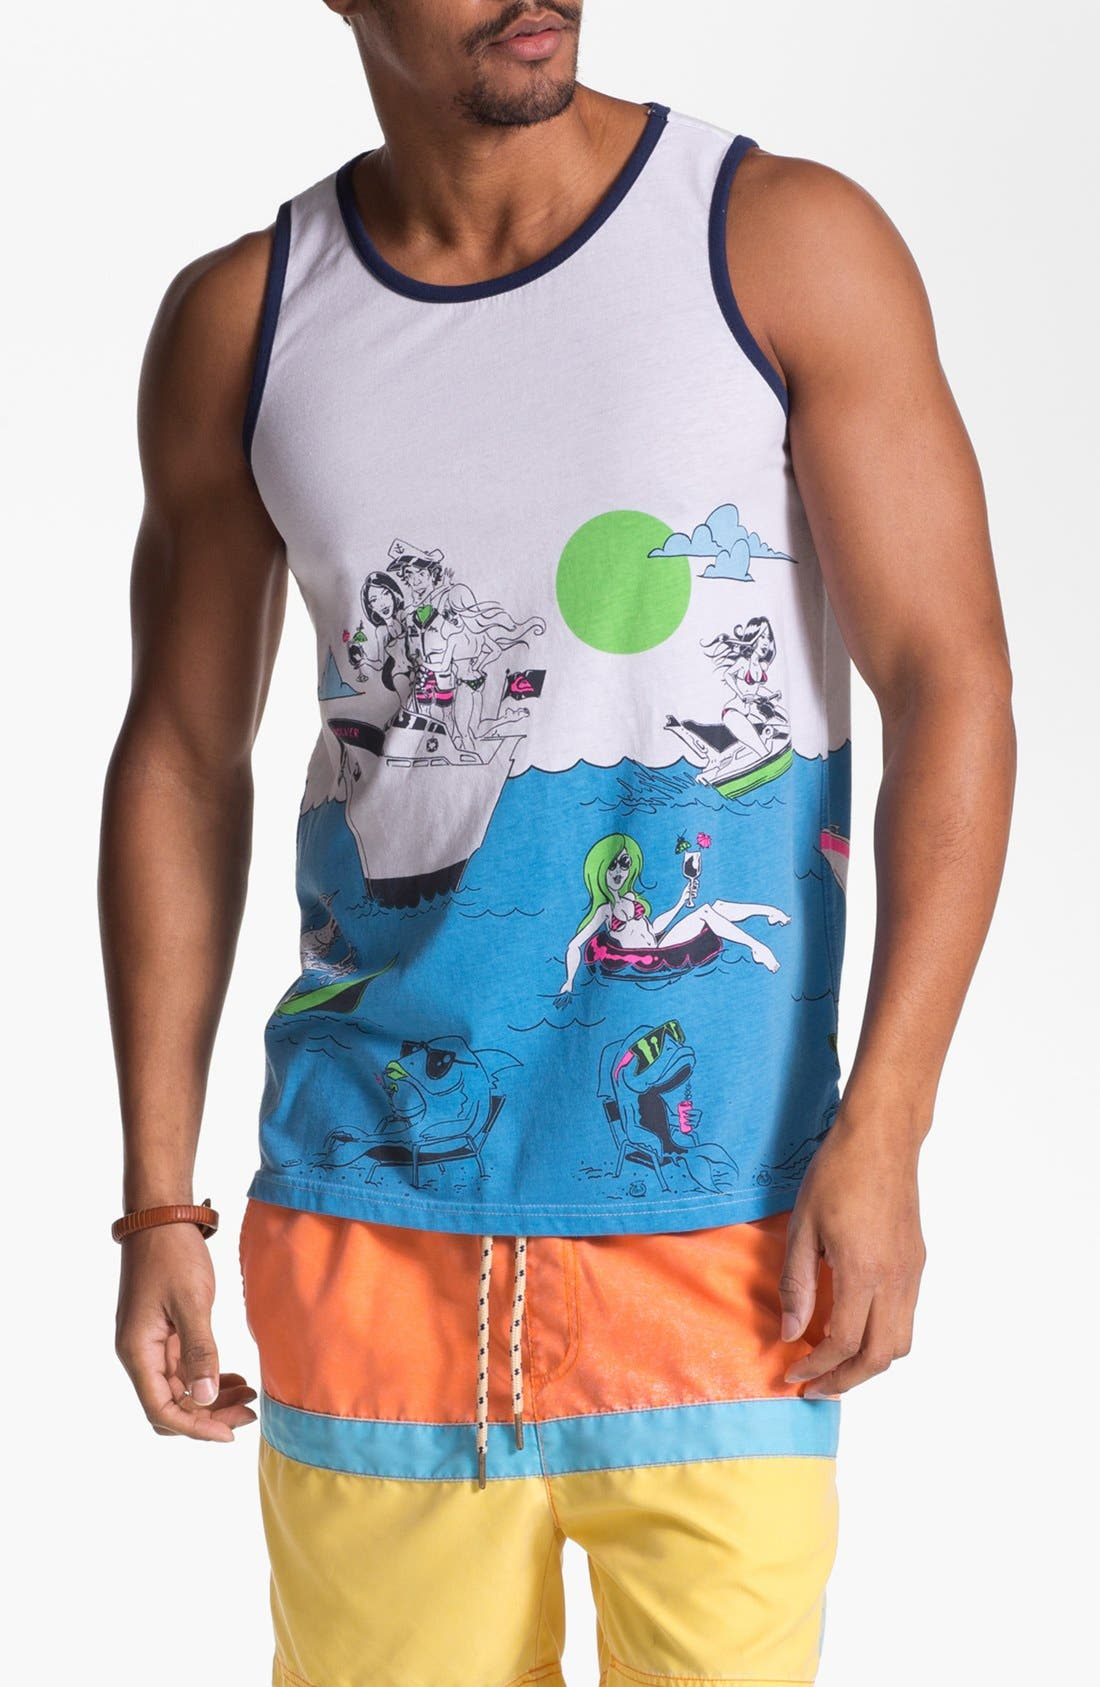 Main Image - Quiksilver 'Sinking Teeth' Graphic Tank Top